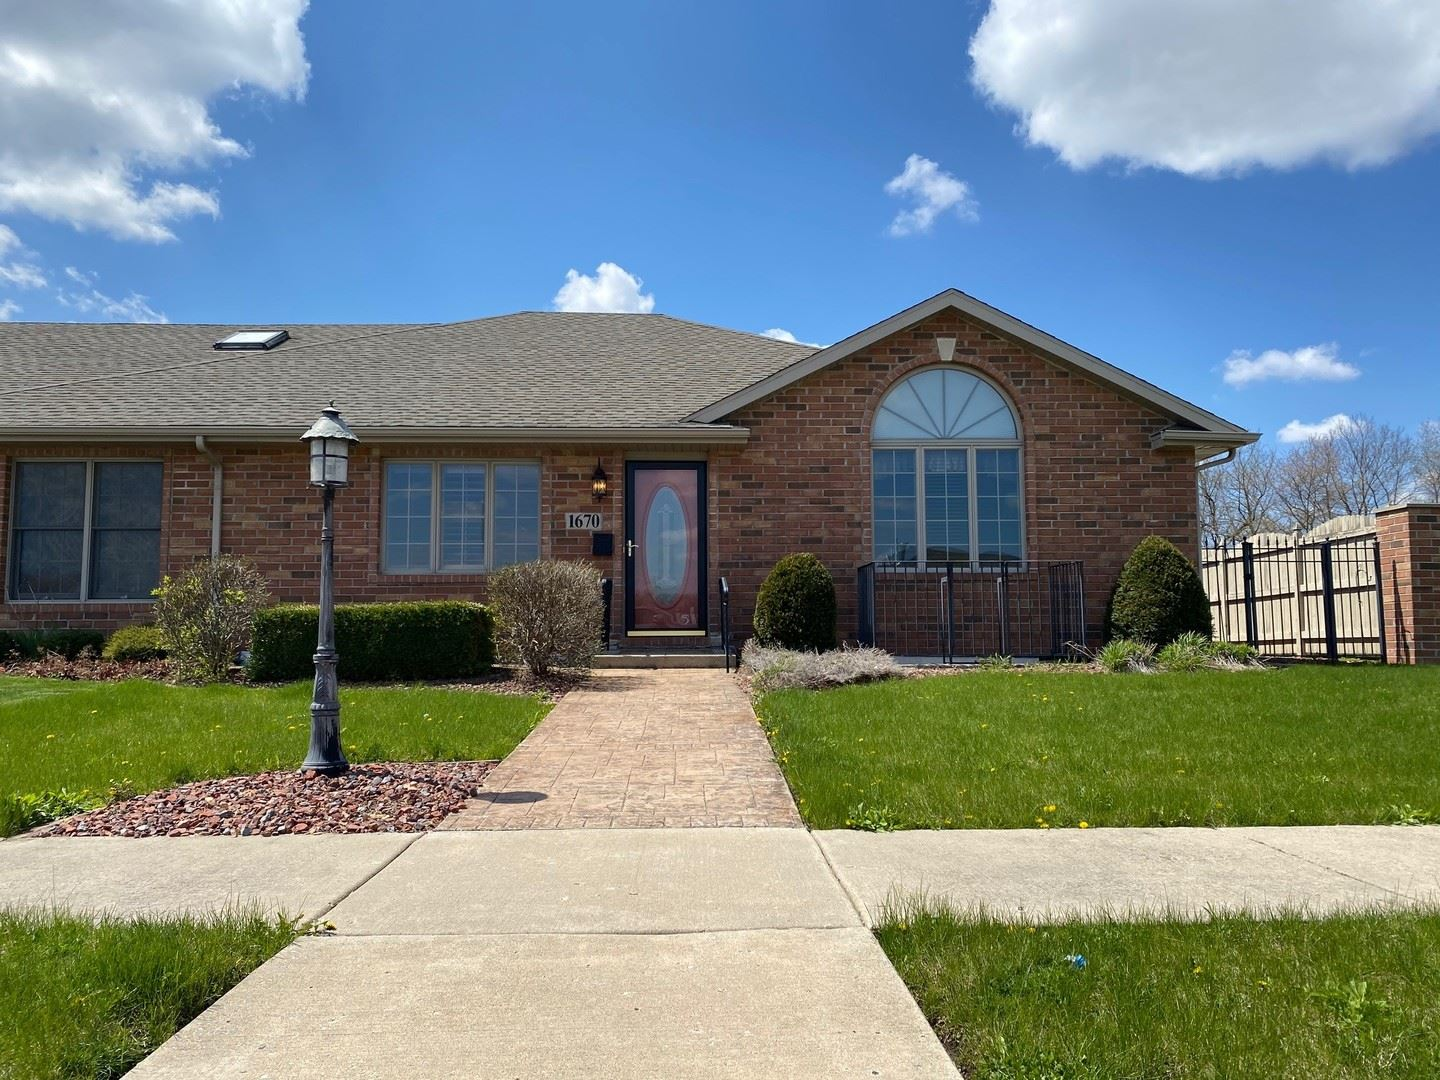 1670 Kirsten Lee Drive #4, Wilmington, IL 60481 - #: 10697196